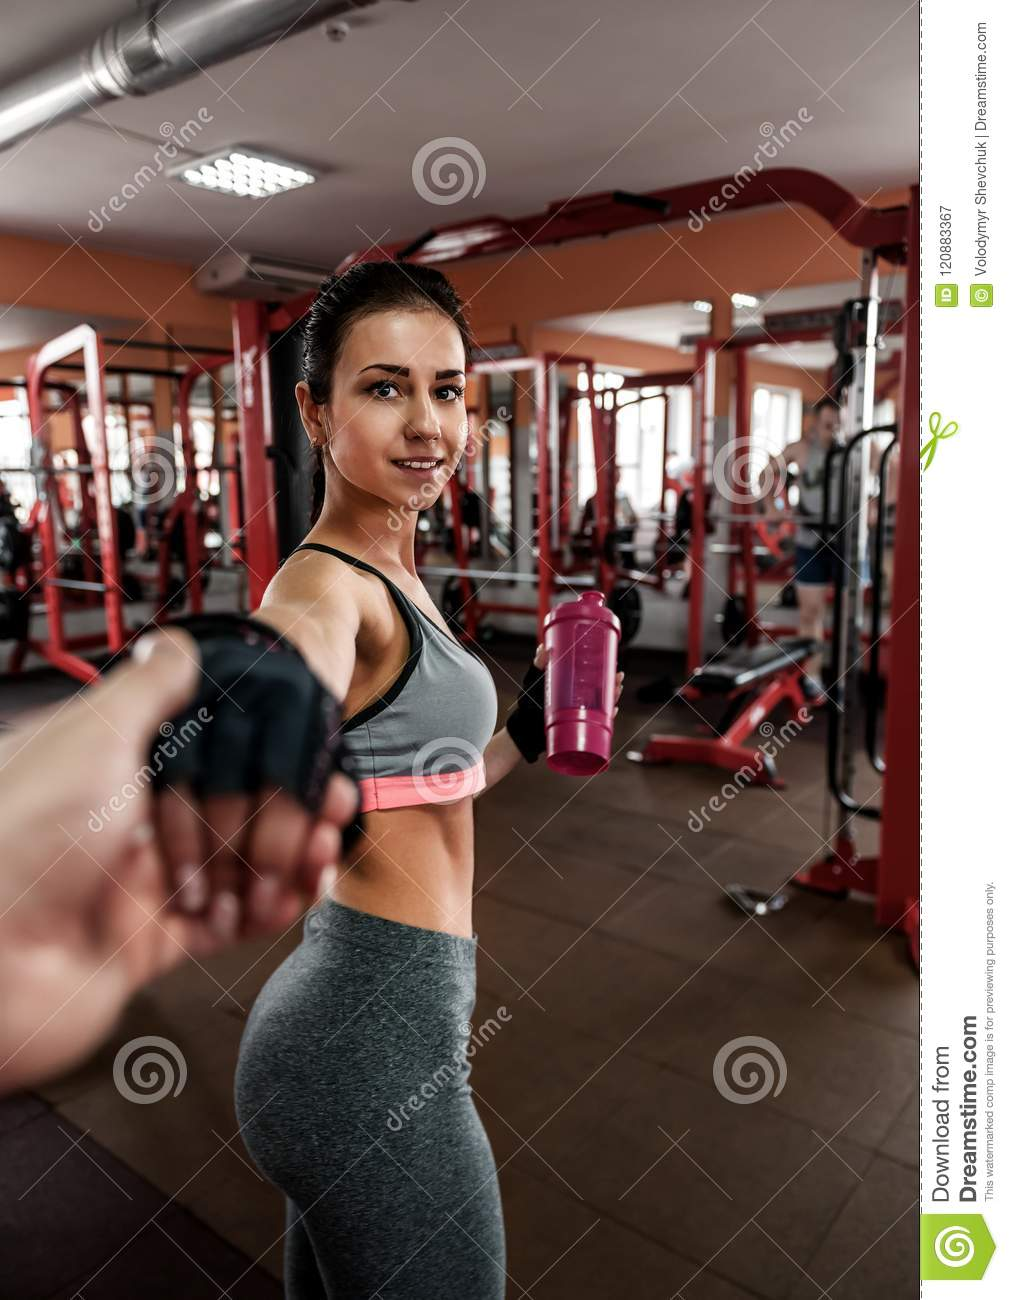 3b3bbeffd Follow Me With Beautiful Girl In The Gym Stock Image - Image of ...